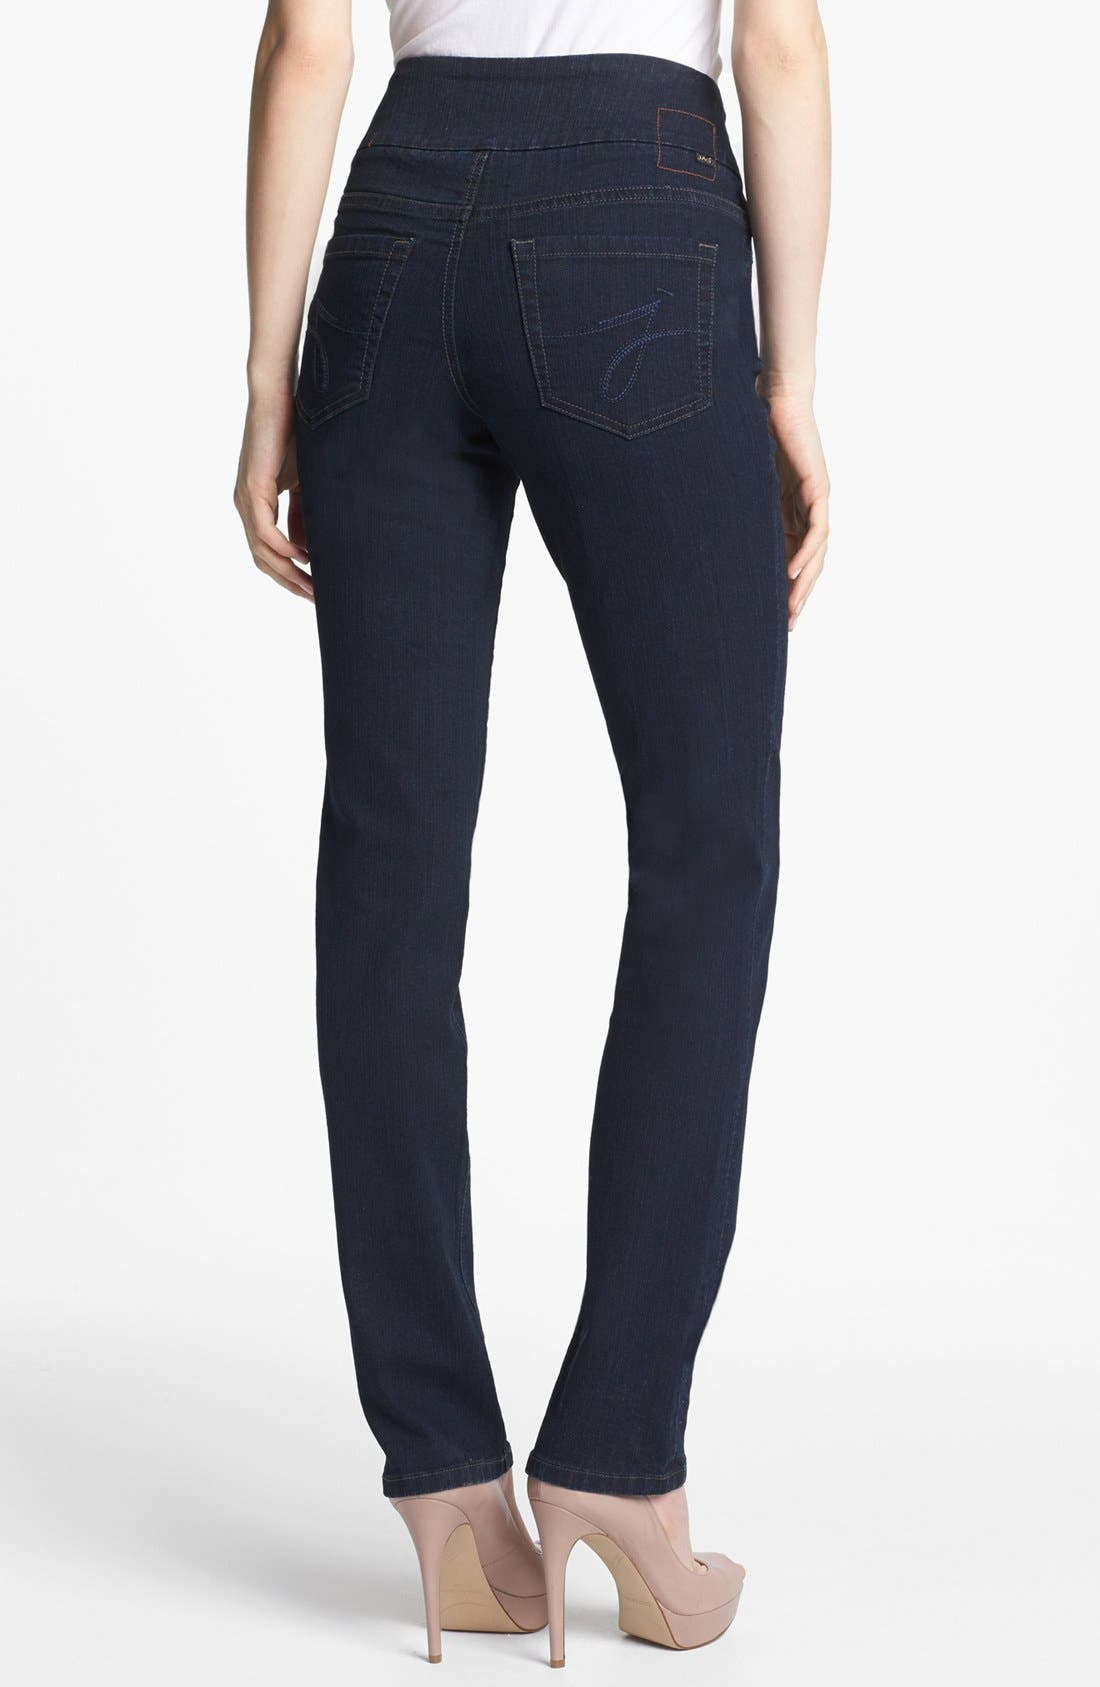 Alternate Image 2  - Jag Jeans 'Peri' Pull-On Straight Leg Jeans (Petite) (After Midnight)